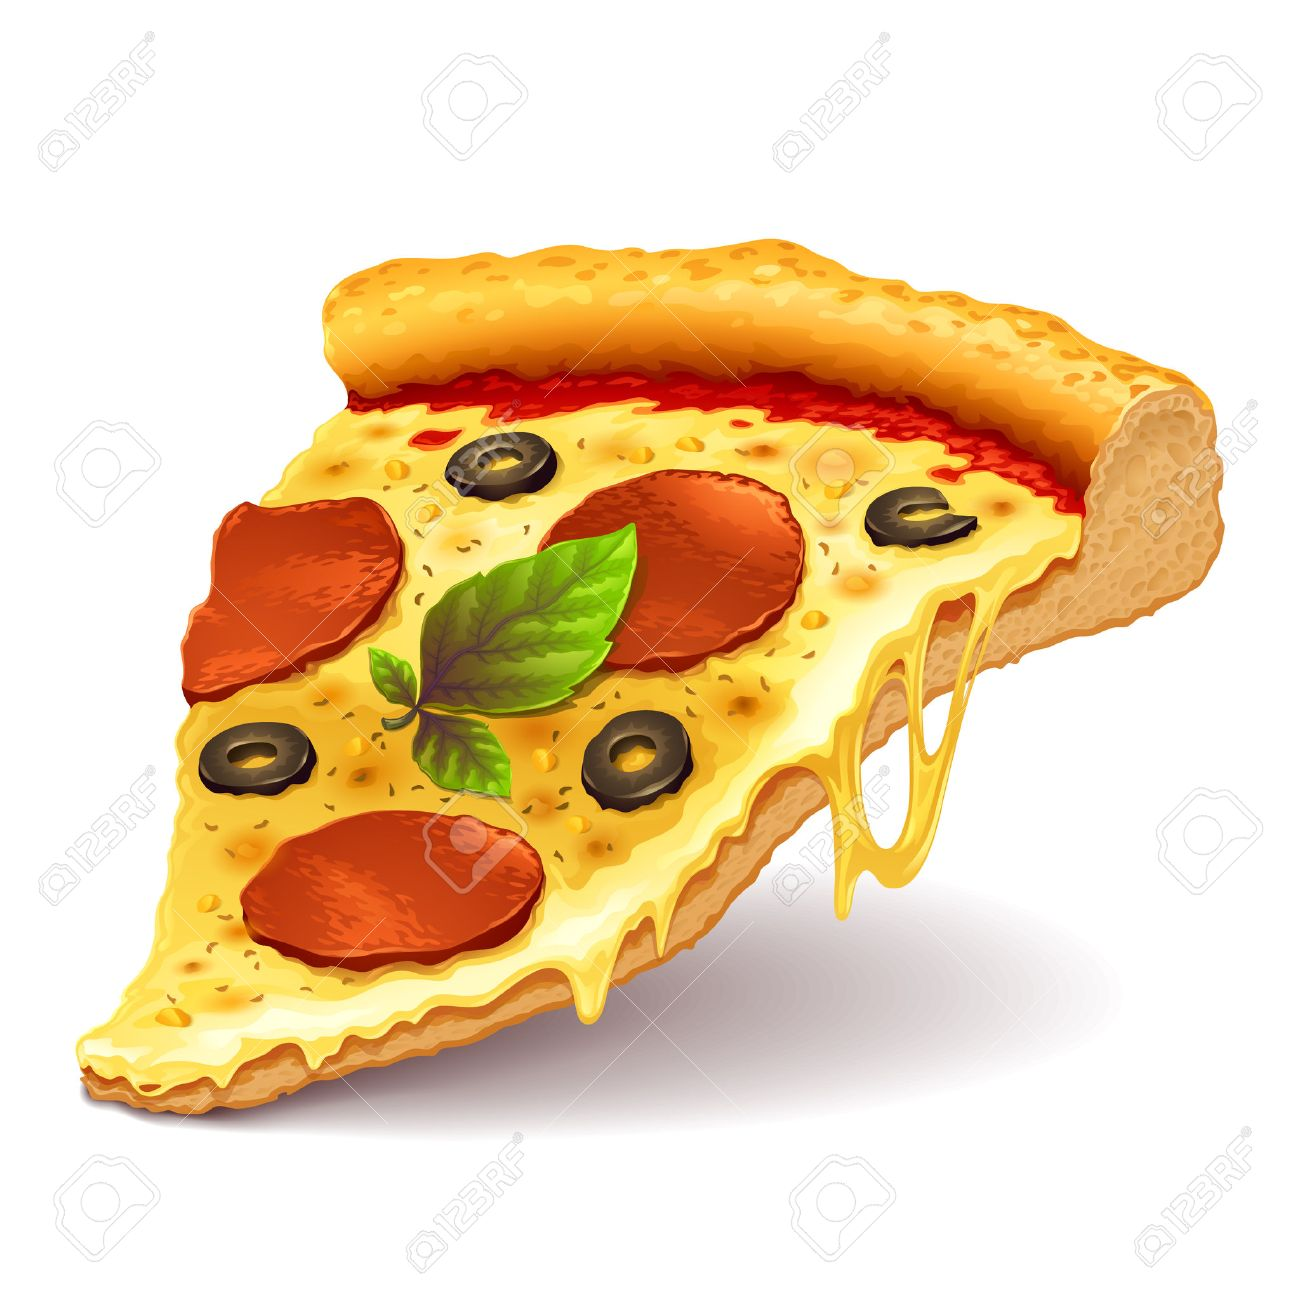 cheesy pizza slice royalty free cliparts vectors and stock rh 123rf com pizza slice vector png pizza slice vector black and white